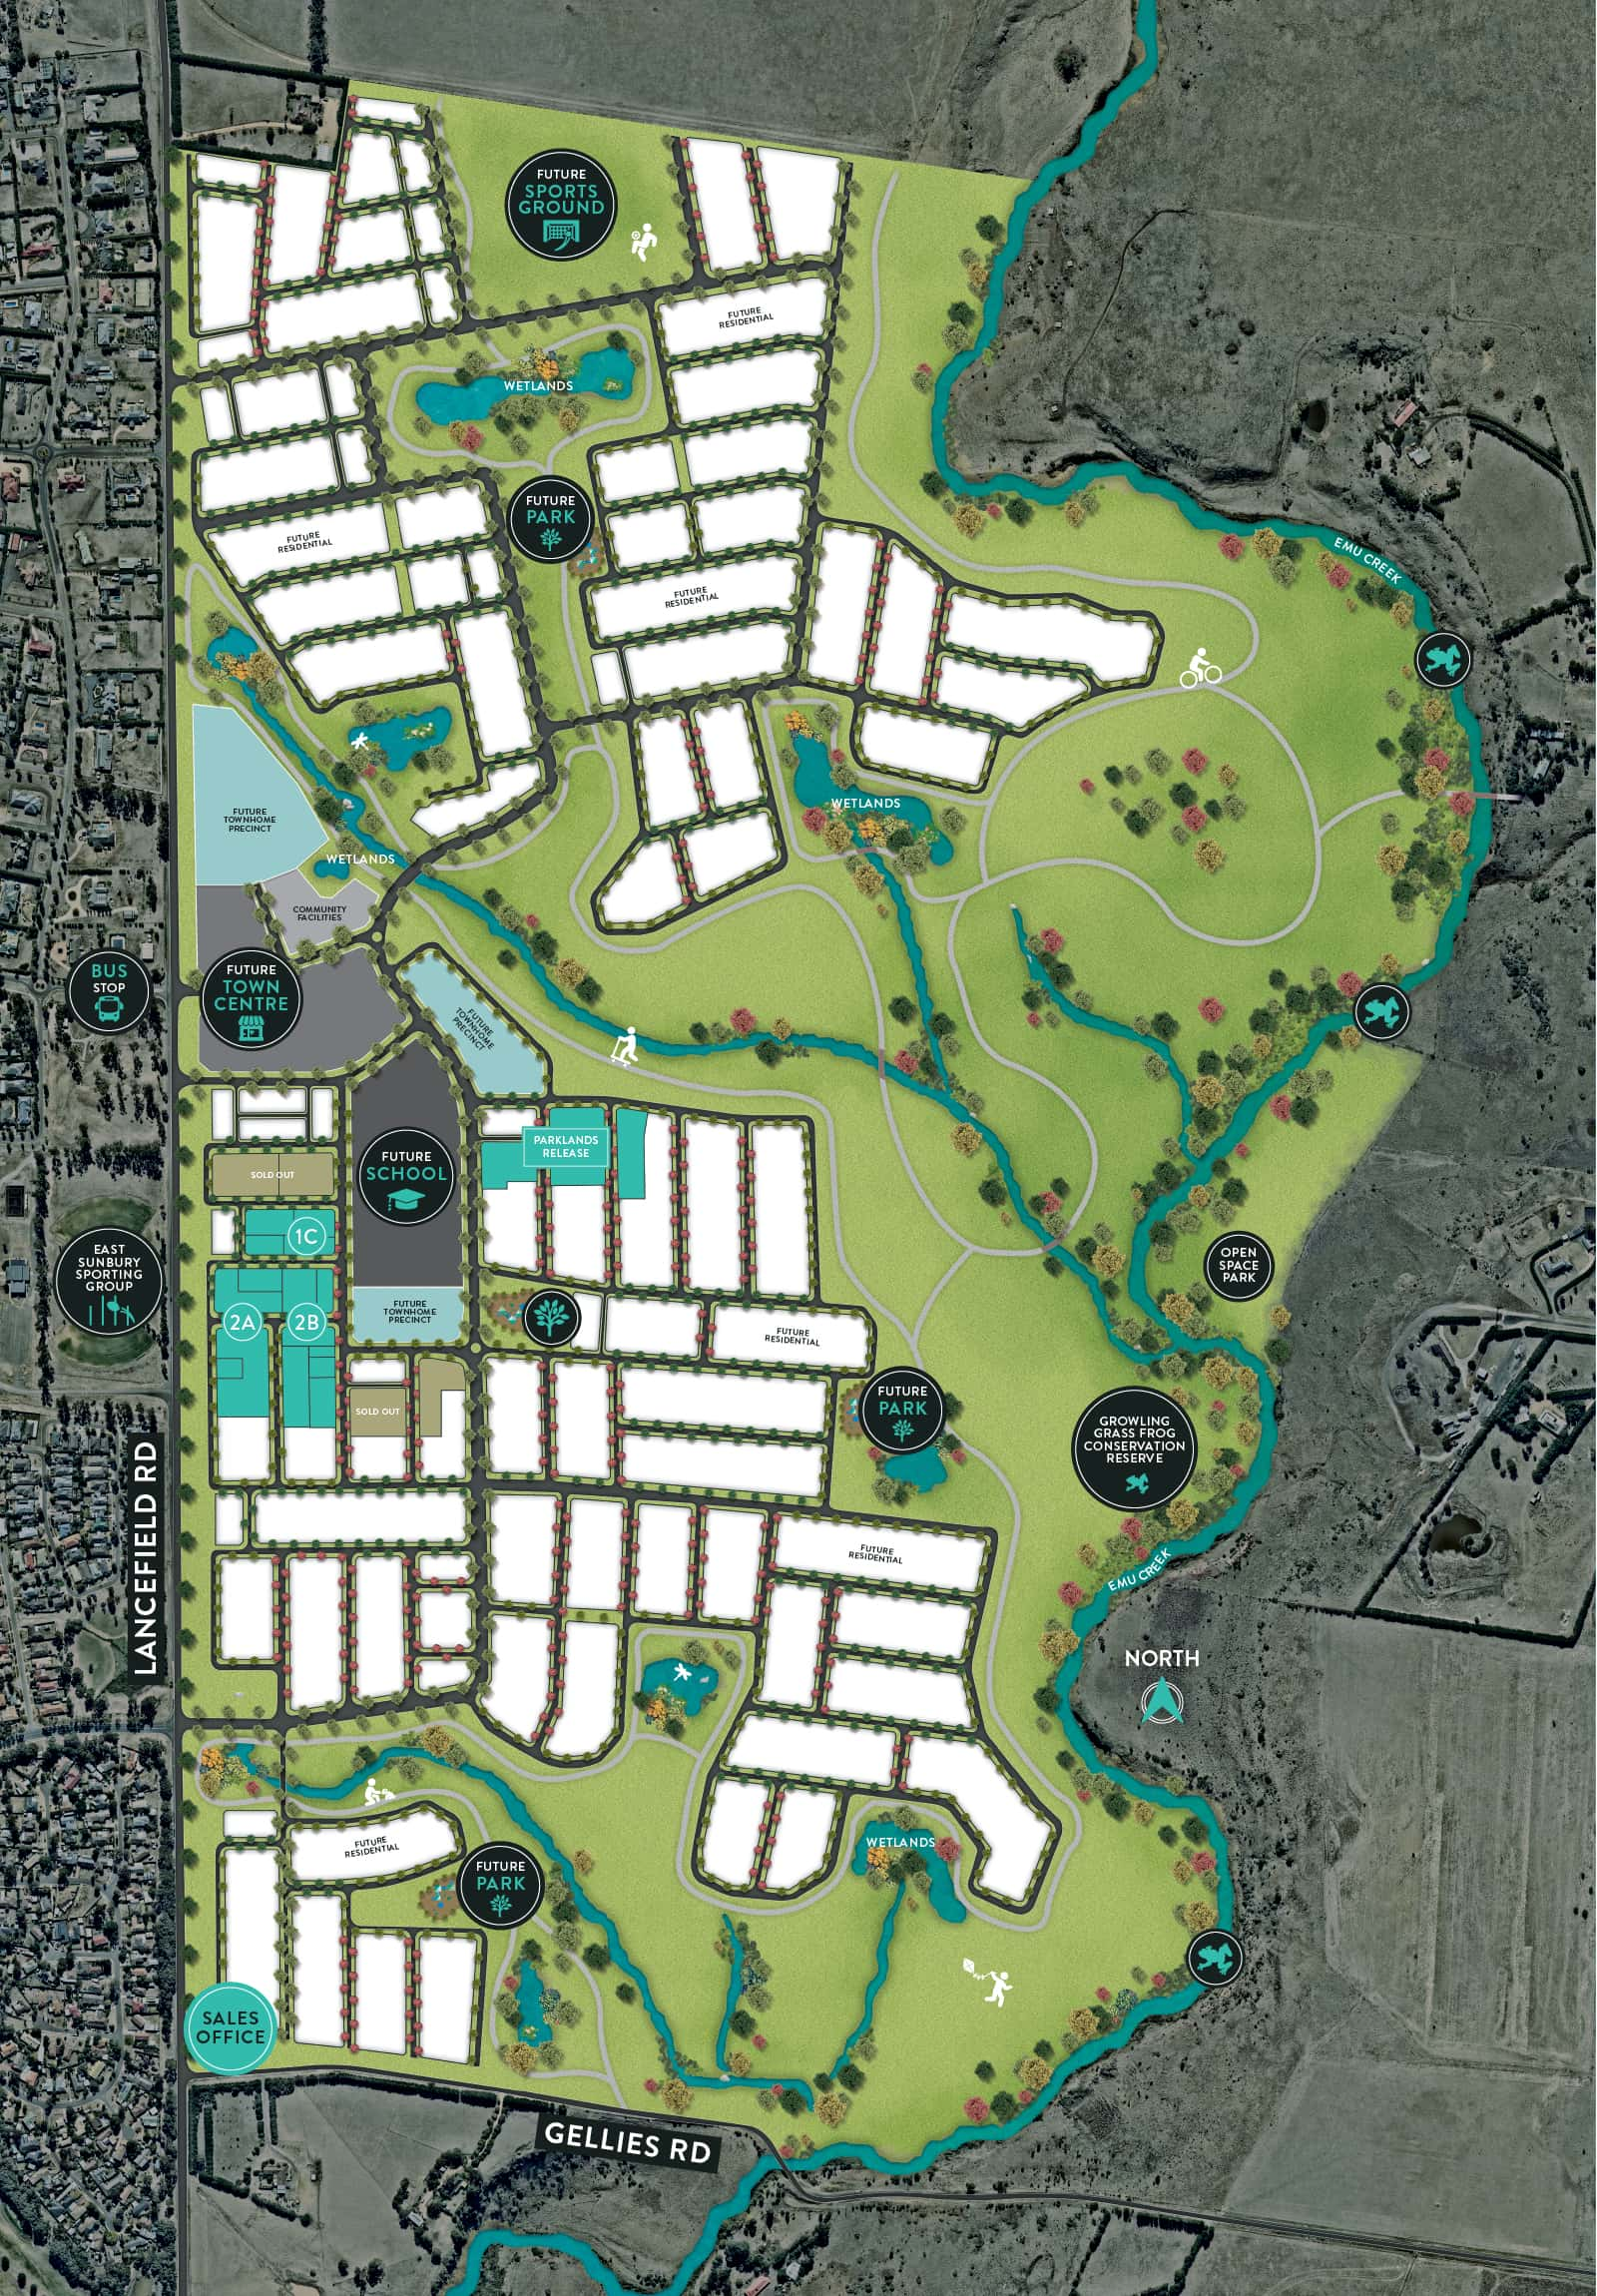 LRD21491 - KINGSFIELD - Masterplan Image - WITHOUT icons